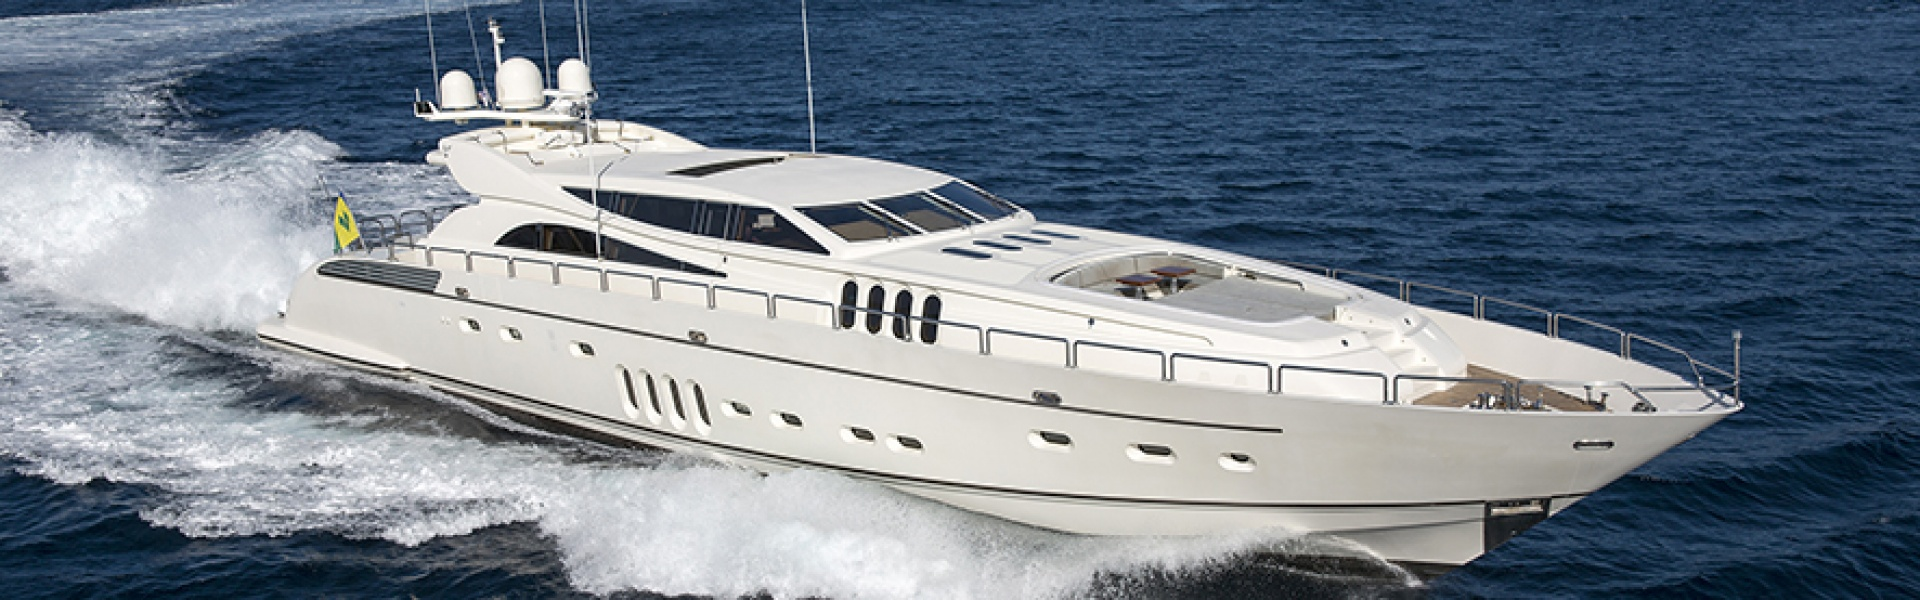 Location de yacht Leopard 34M